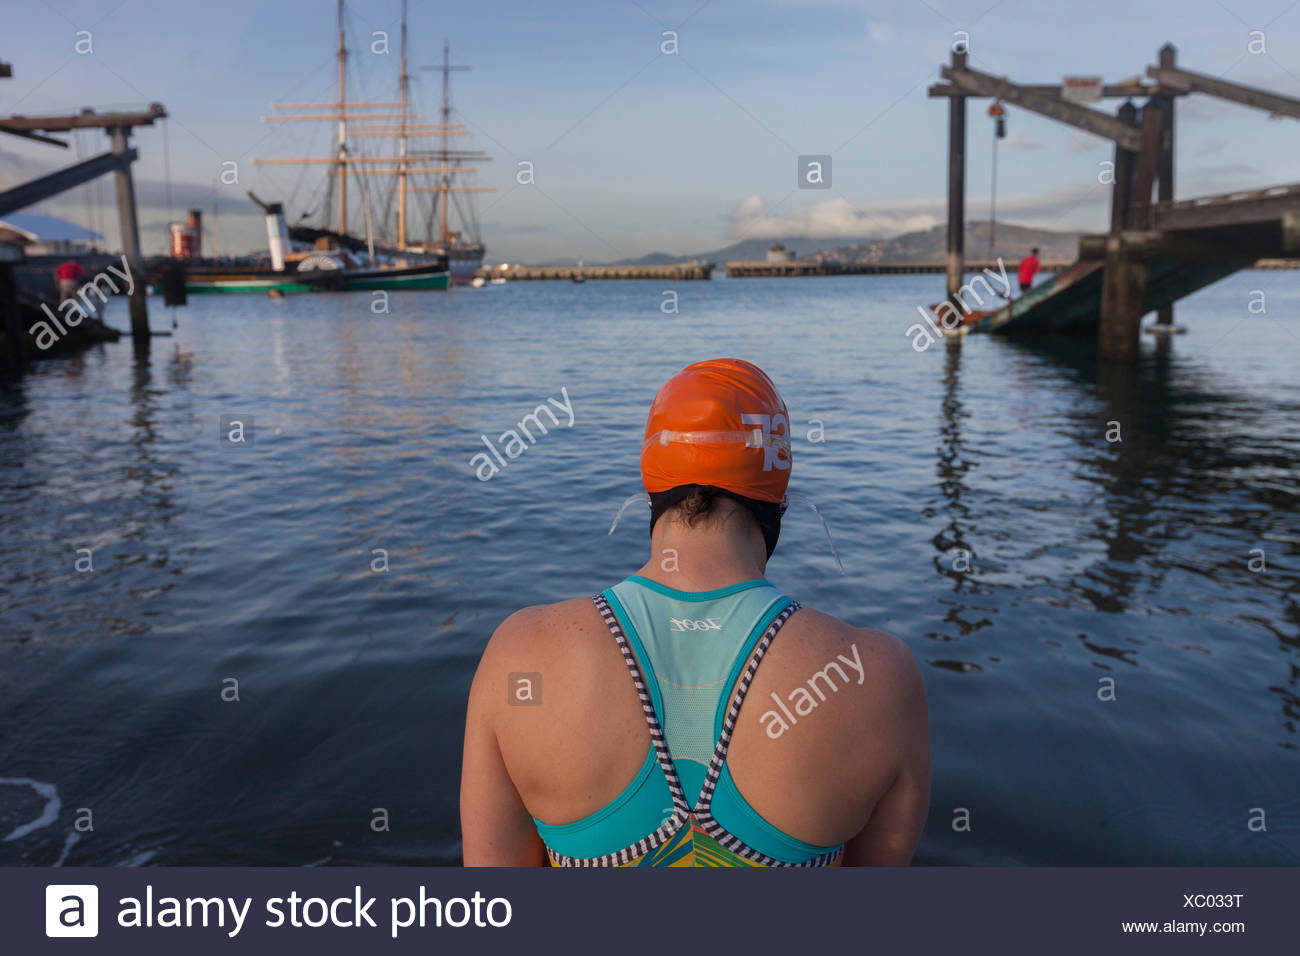 rear view of person in swimsuit, Dolphin Club, San Francisco, California, USA - Stock Image